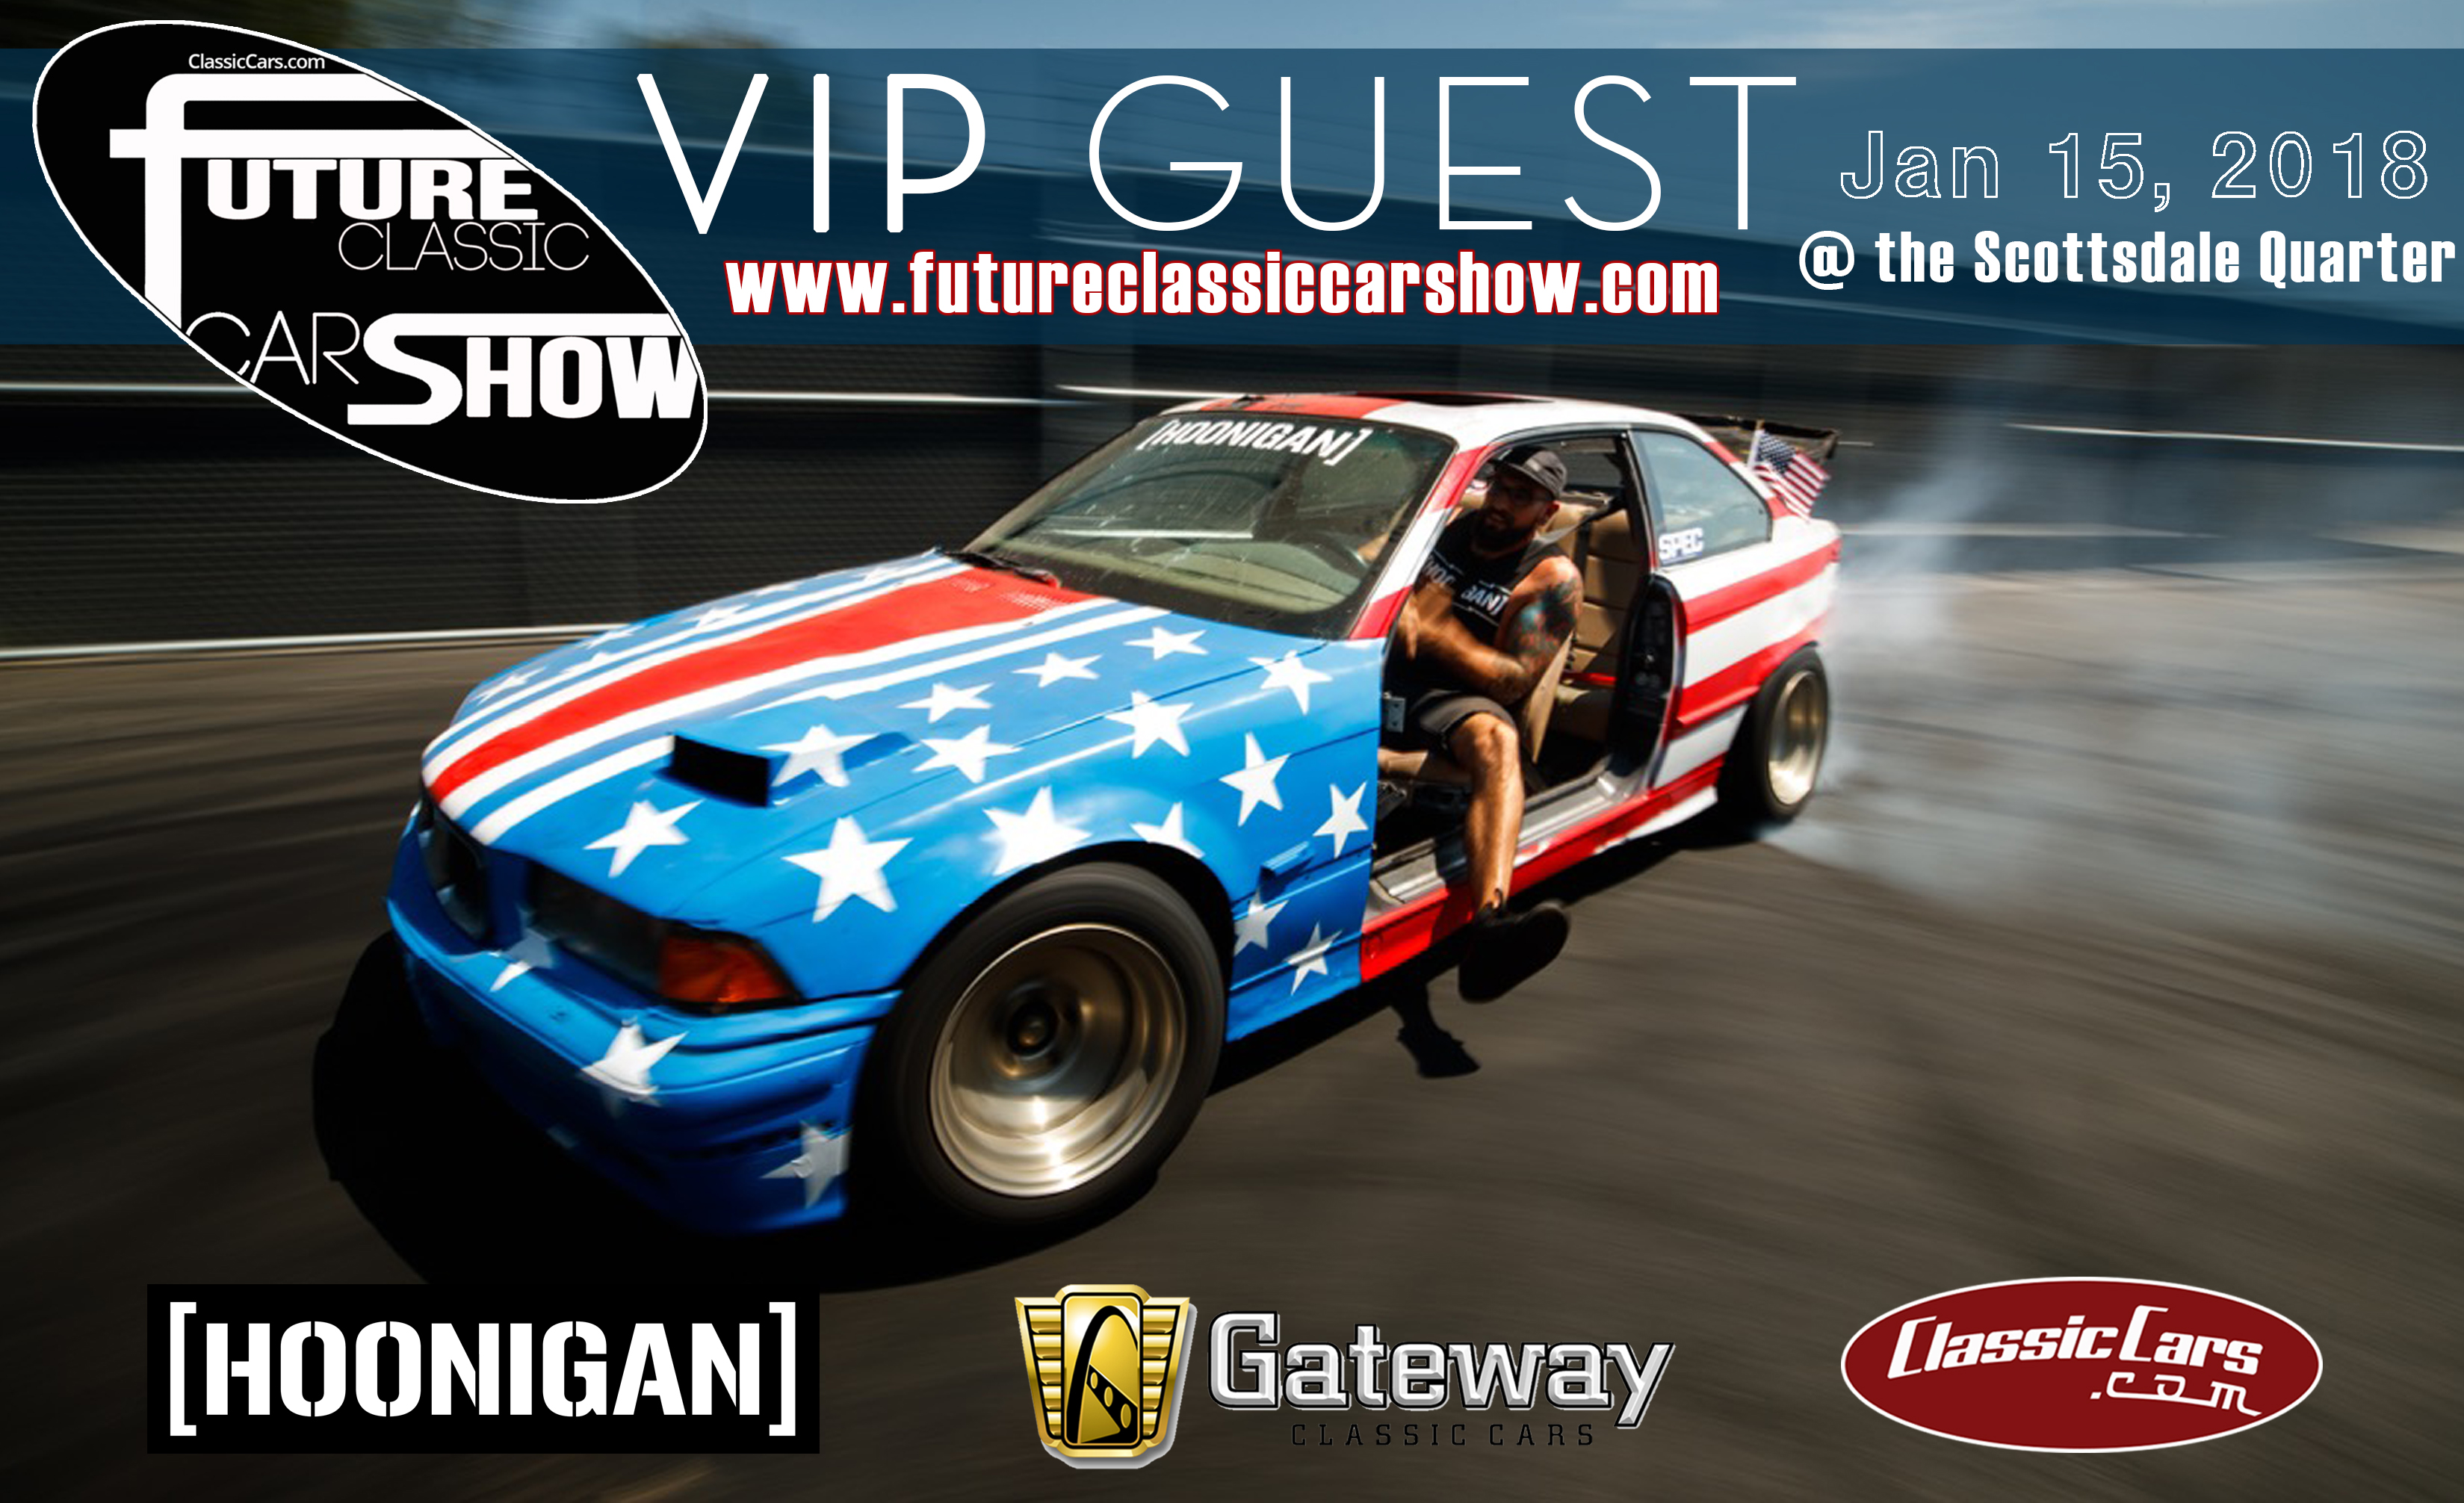 Hoonigan Heroes Coming To Future Classic Car Show ClassicCars - Scottsdale classic car show